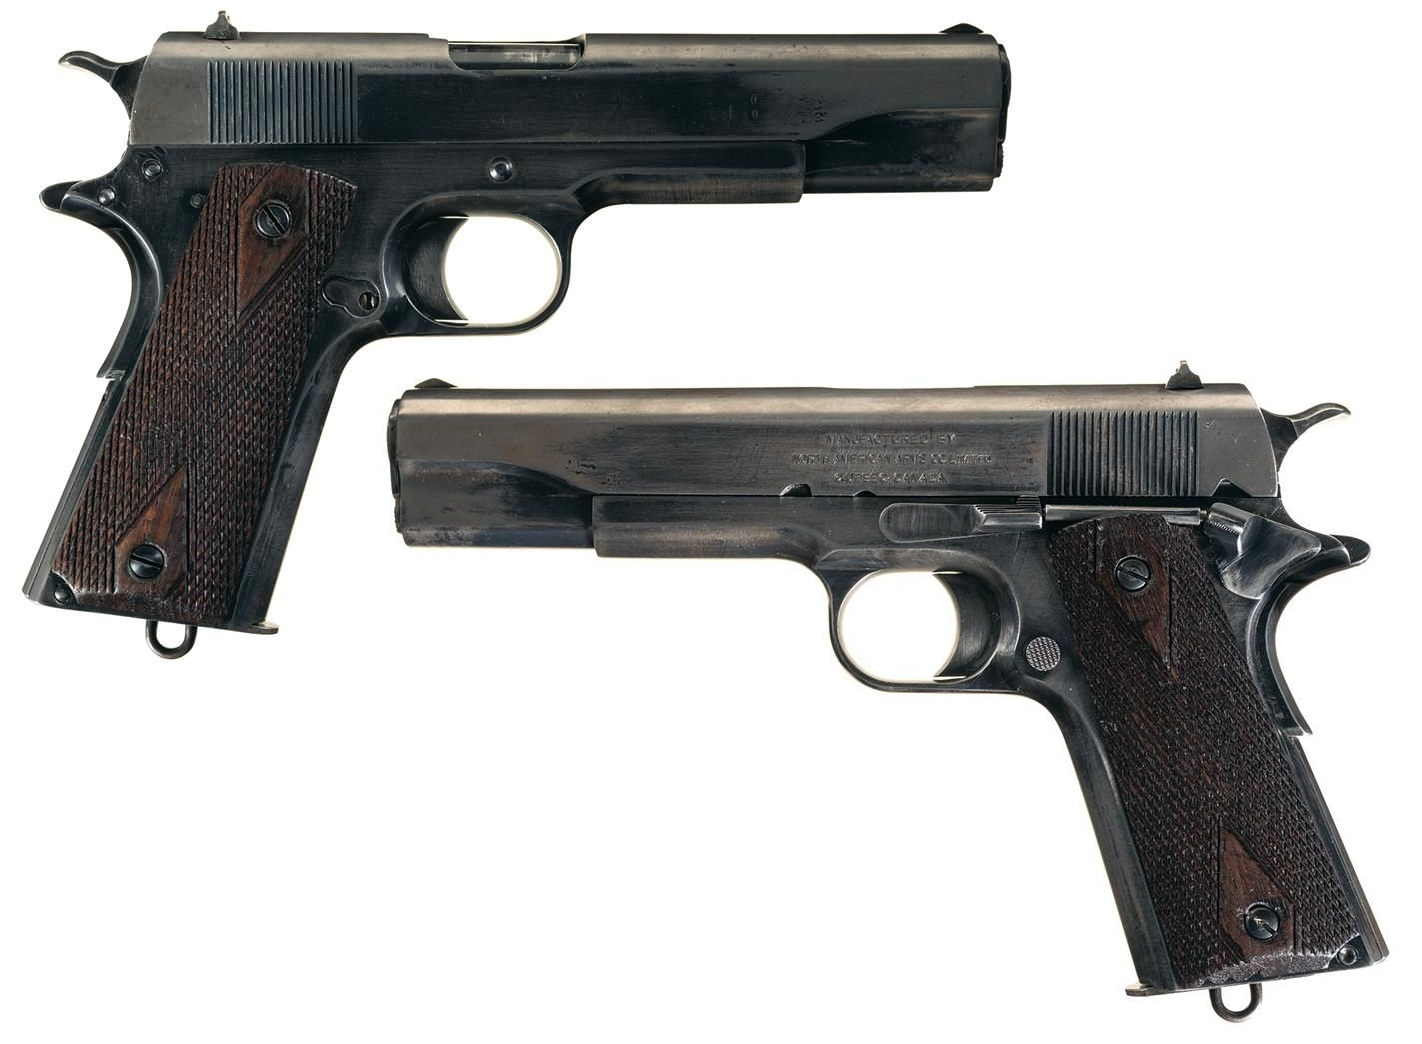 North American Arms Model 1911 Semi-Automatic Pistol